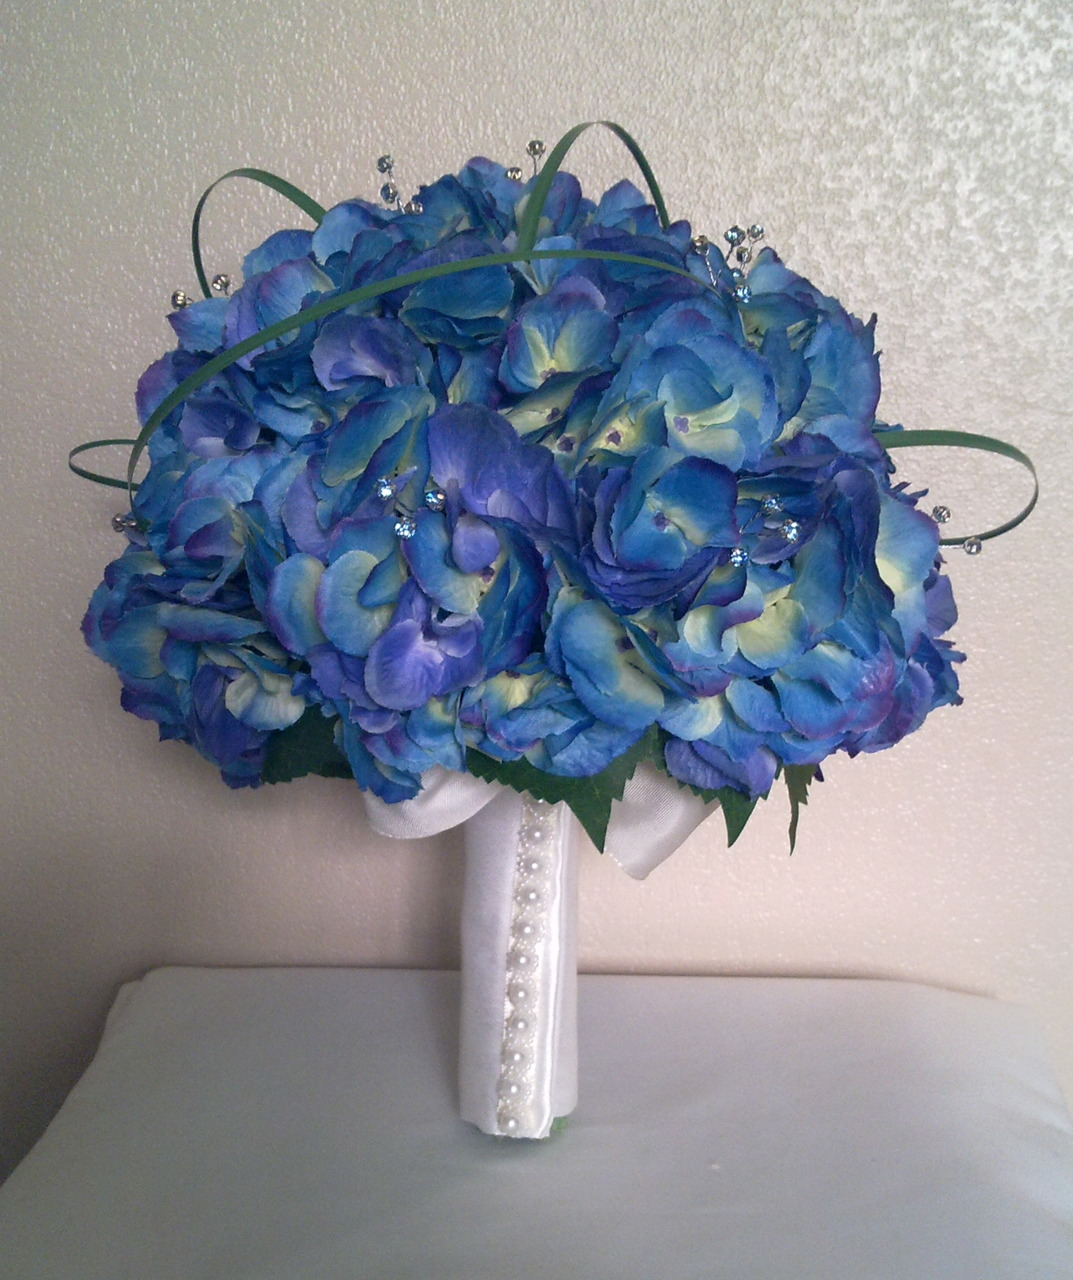 Beautiful blue bridal bouquet bouquet wedding flower for Best flowers for wedding bouquet